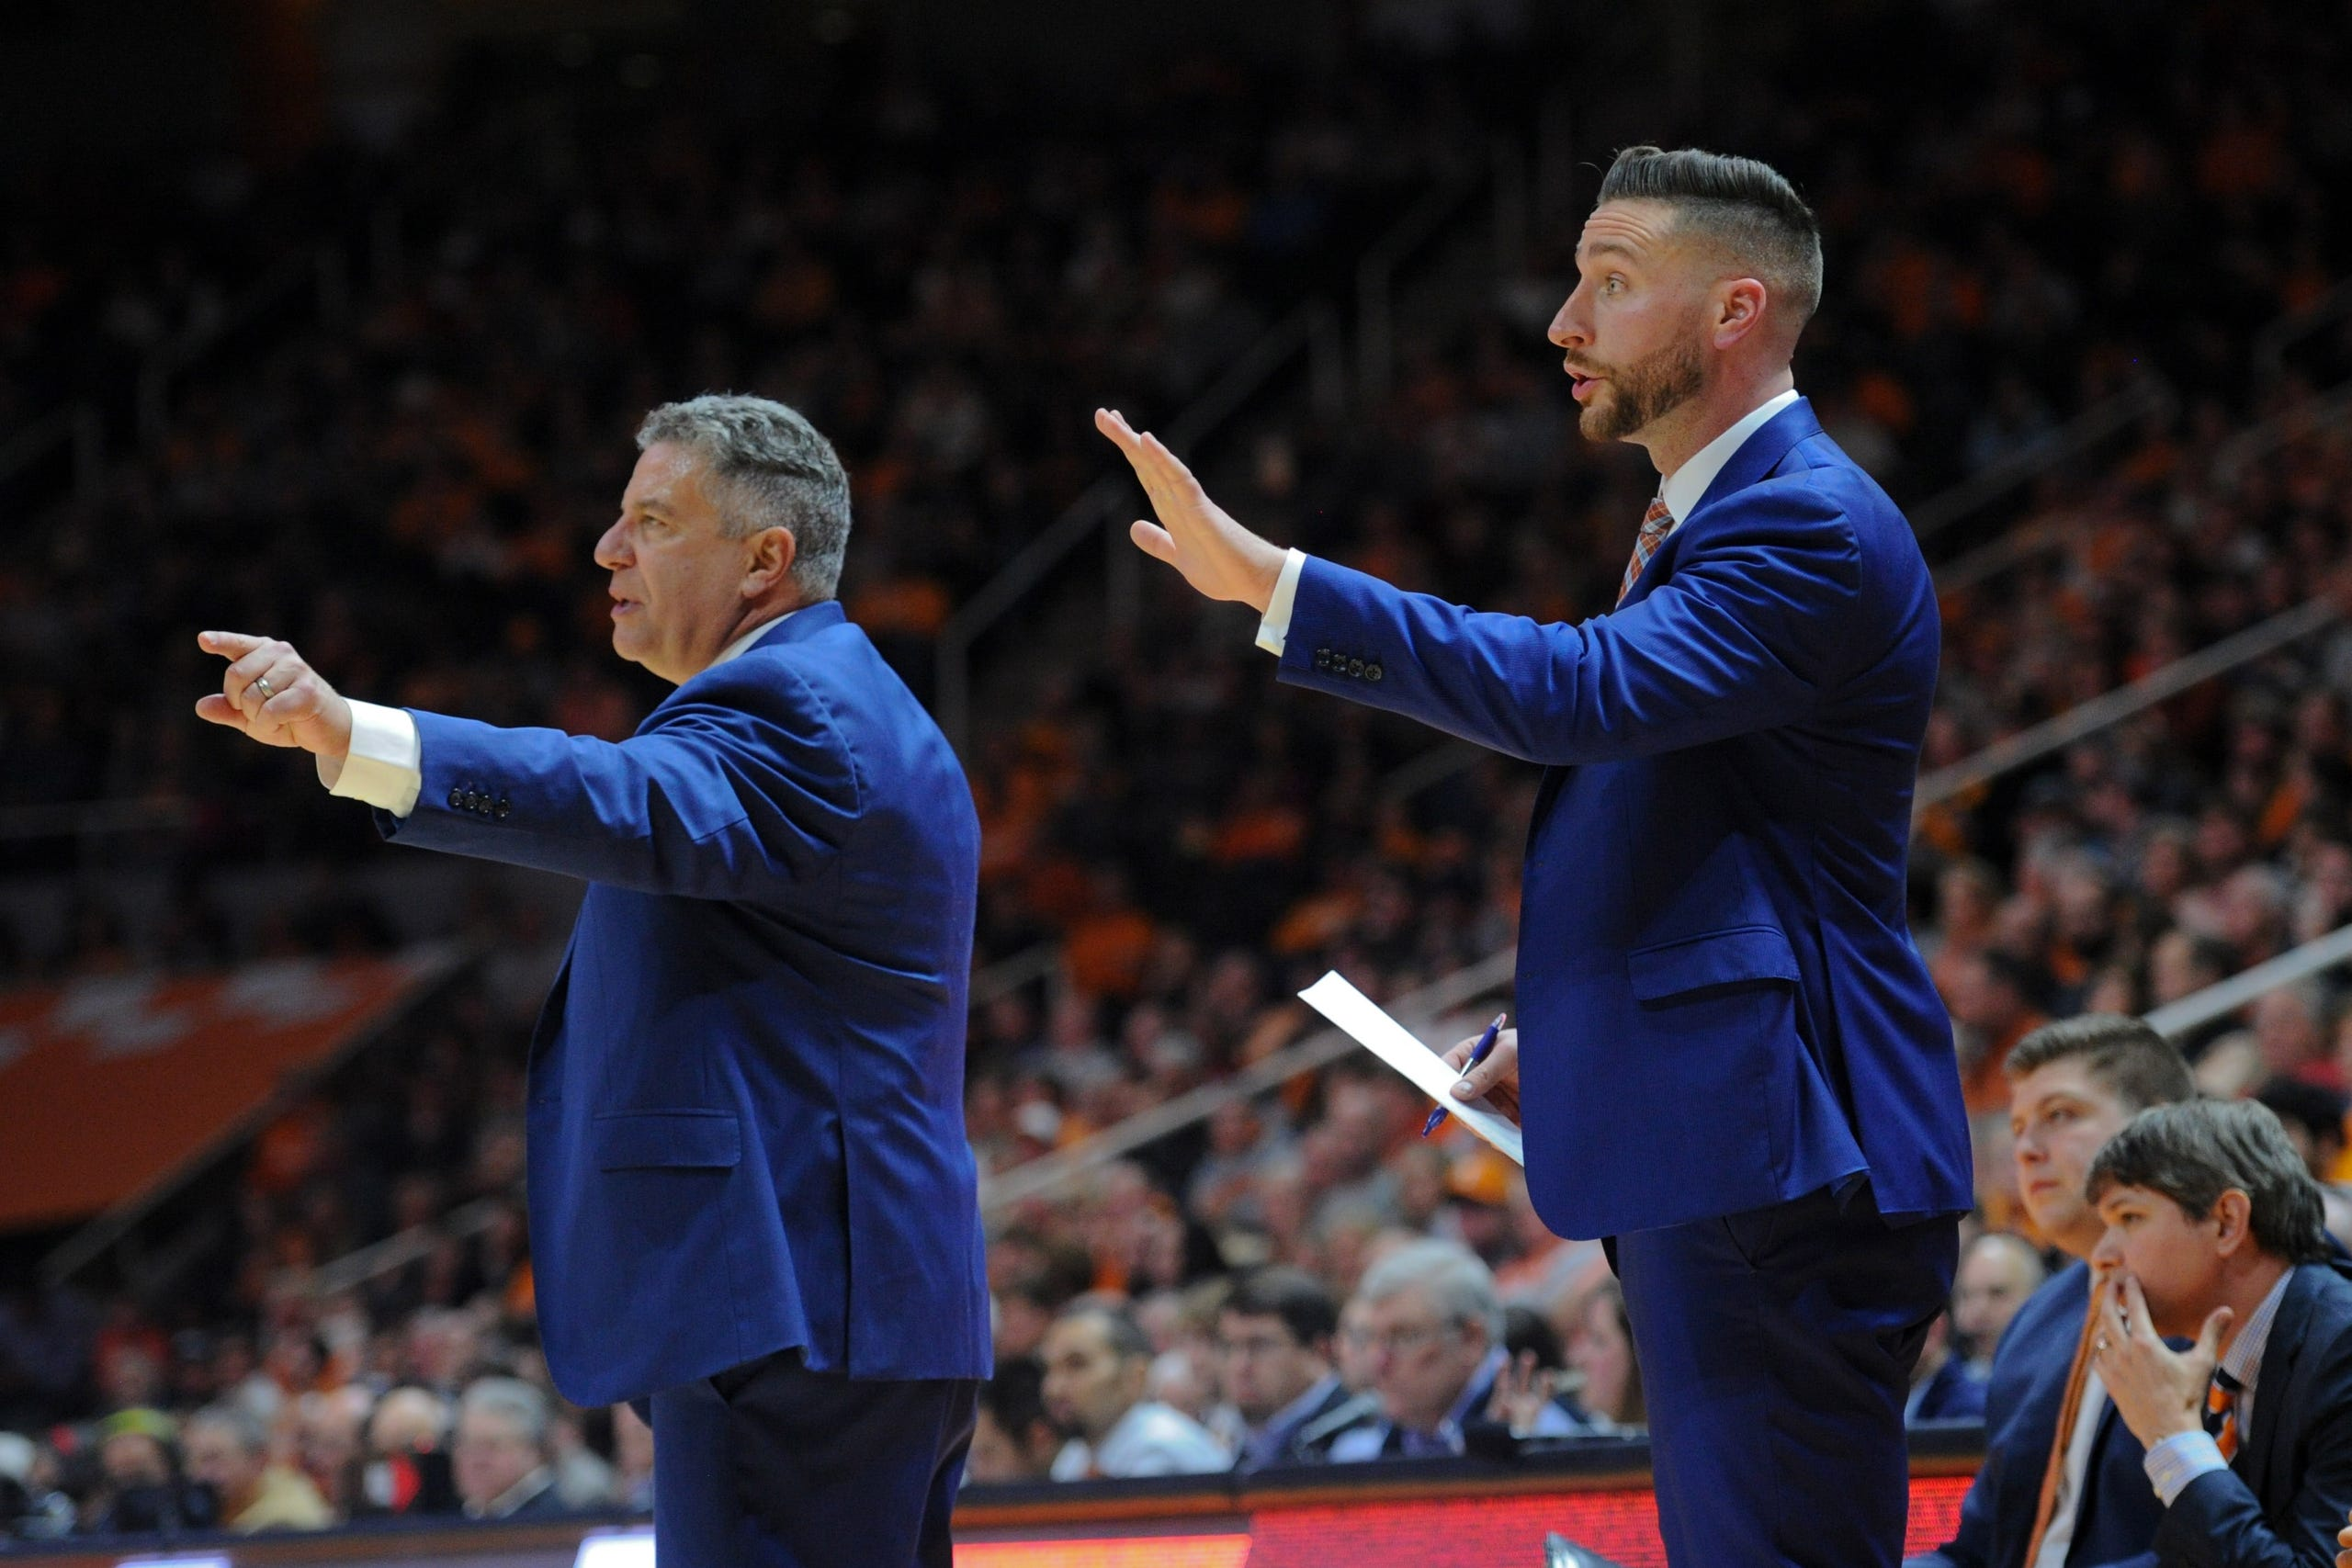 Steven Pearl A Look At The Auburn Basketball Assistant Coach